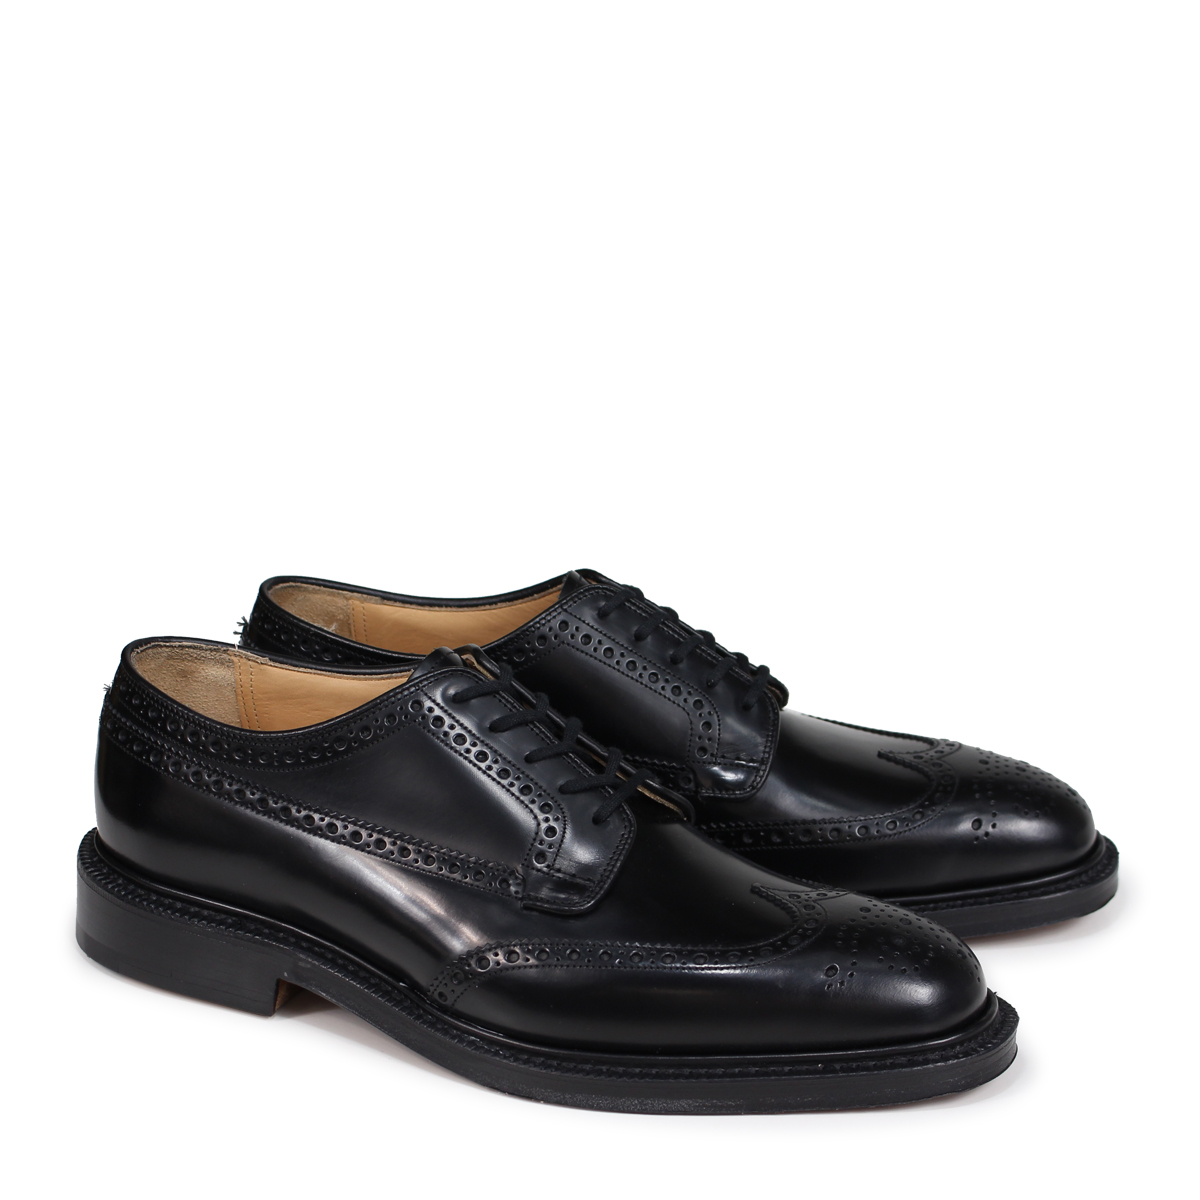 on sale 00078 b041f Church's GRAFTON church shoes Grafton wing tip shoes men leather black  EEB009 [195]